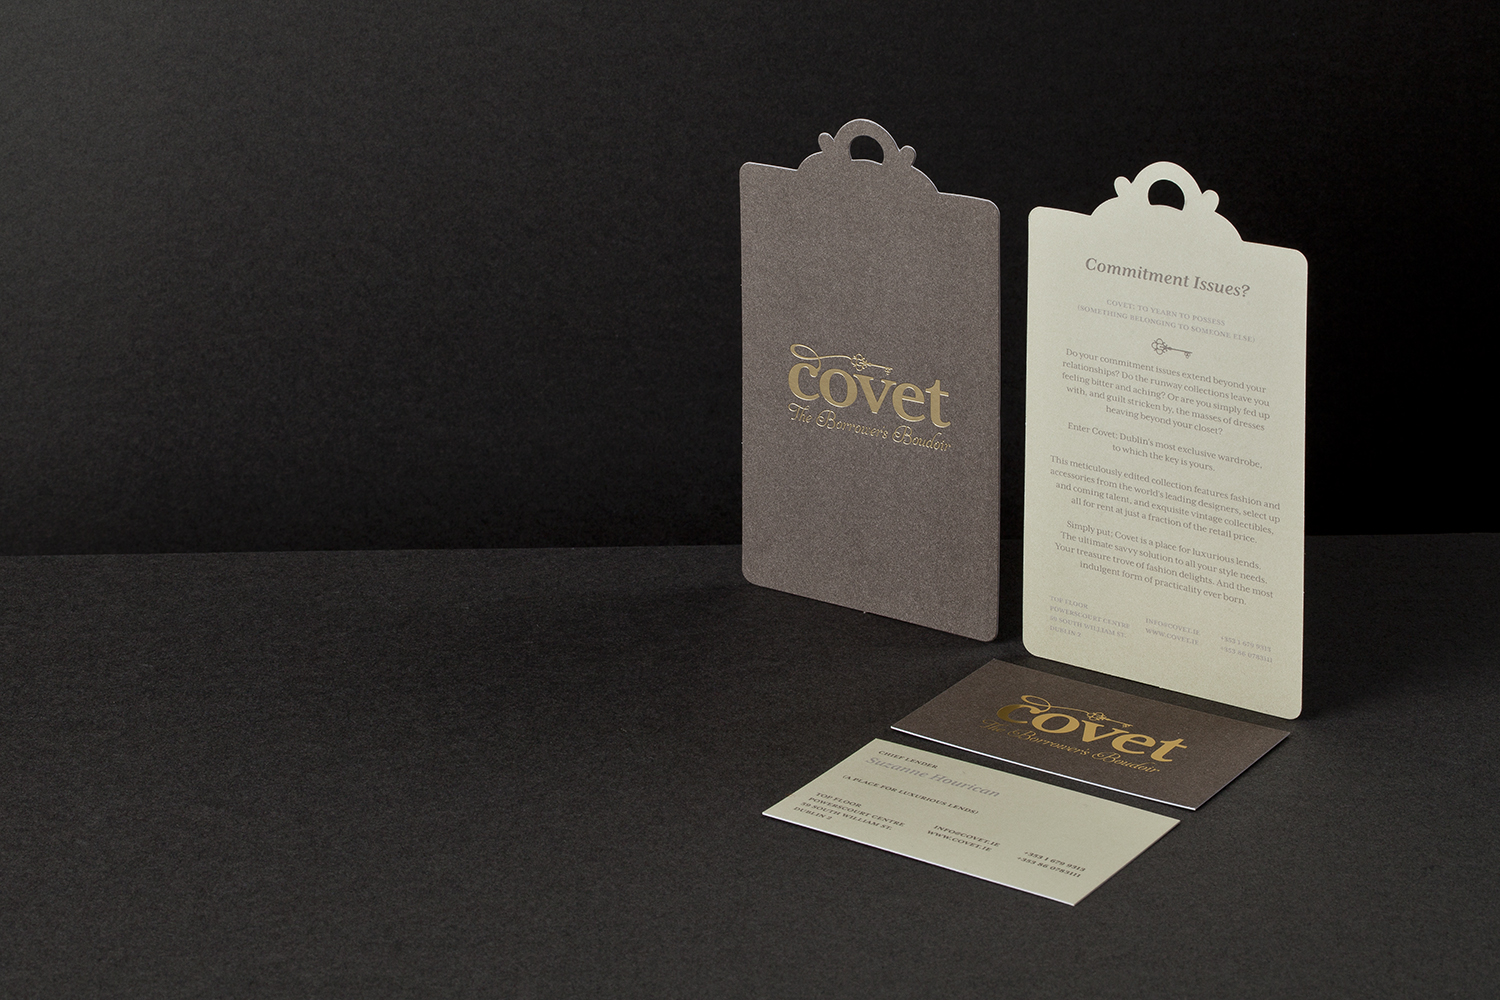 Covet Tags 02_HR.jpg